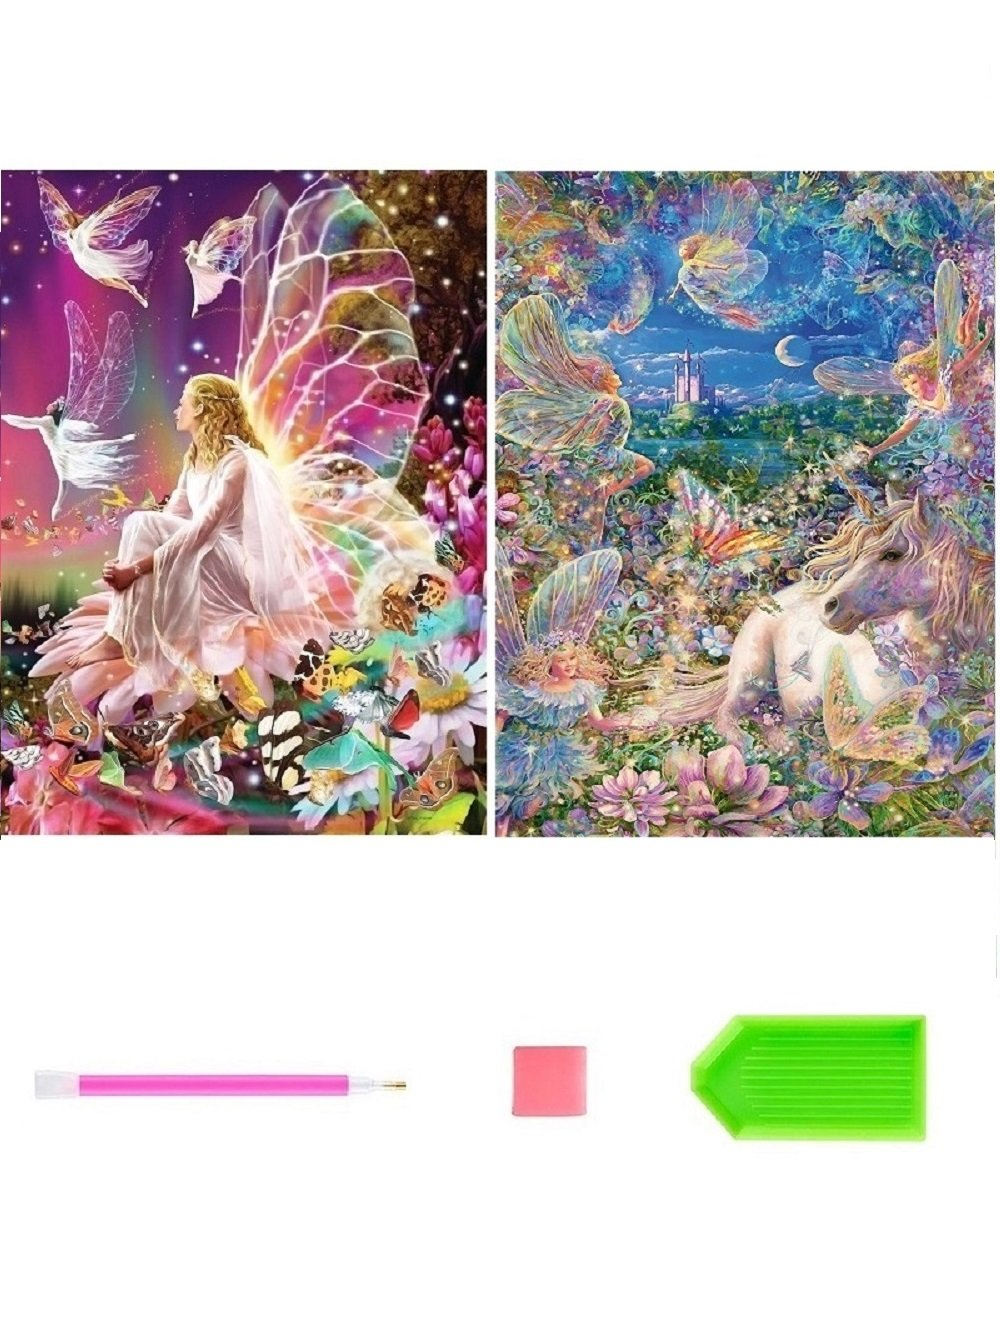 2 Pack 5D Diamond Painting Kits for Adults Kids Diamond Paint by Number Kits,Crystal Rhinestone Diamond Embroidery Paintings Pictures Arts Craft for Home Wall Decor